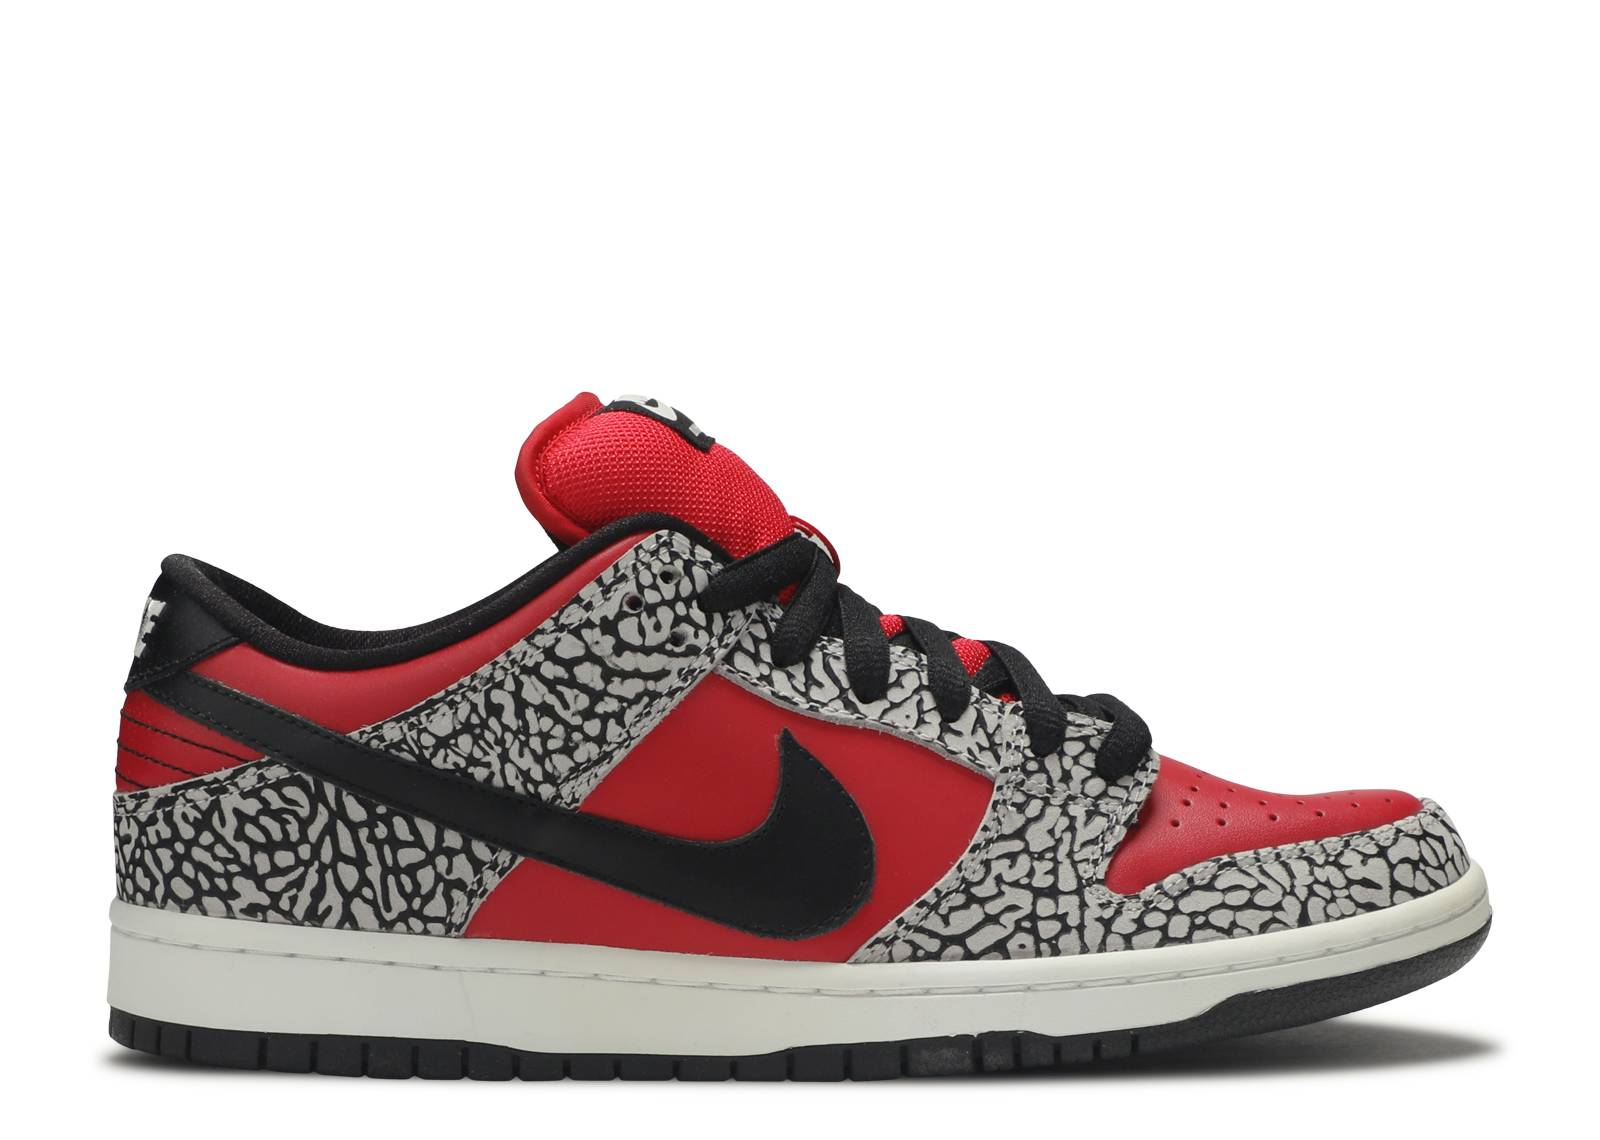 "Supreme x Dunk Low Premium SB 'Red Cement' ""Red Cement"""